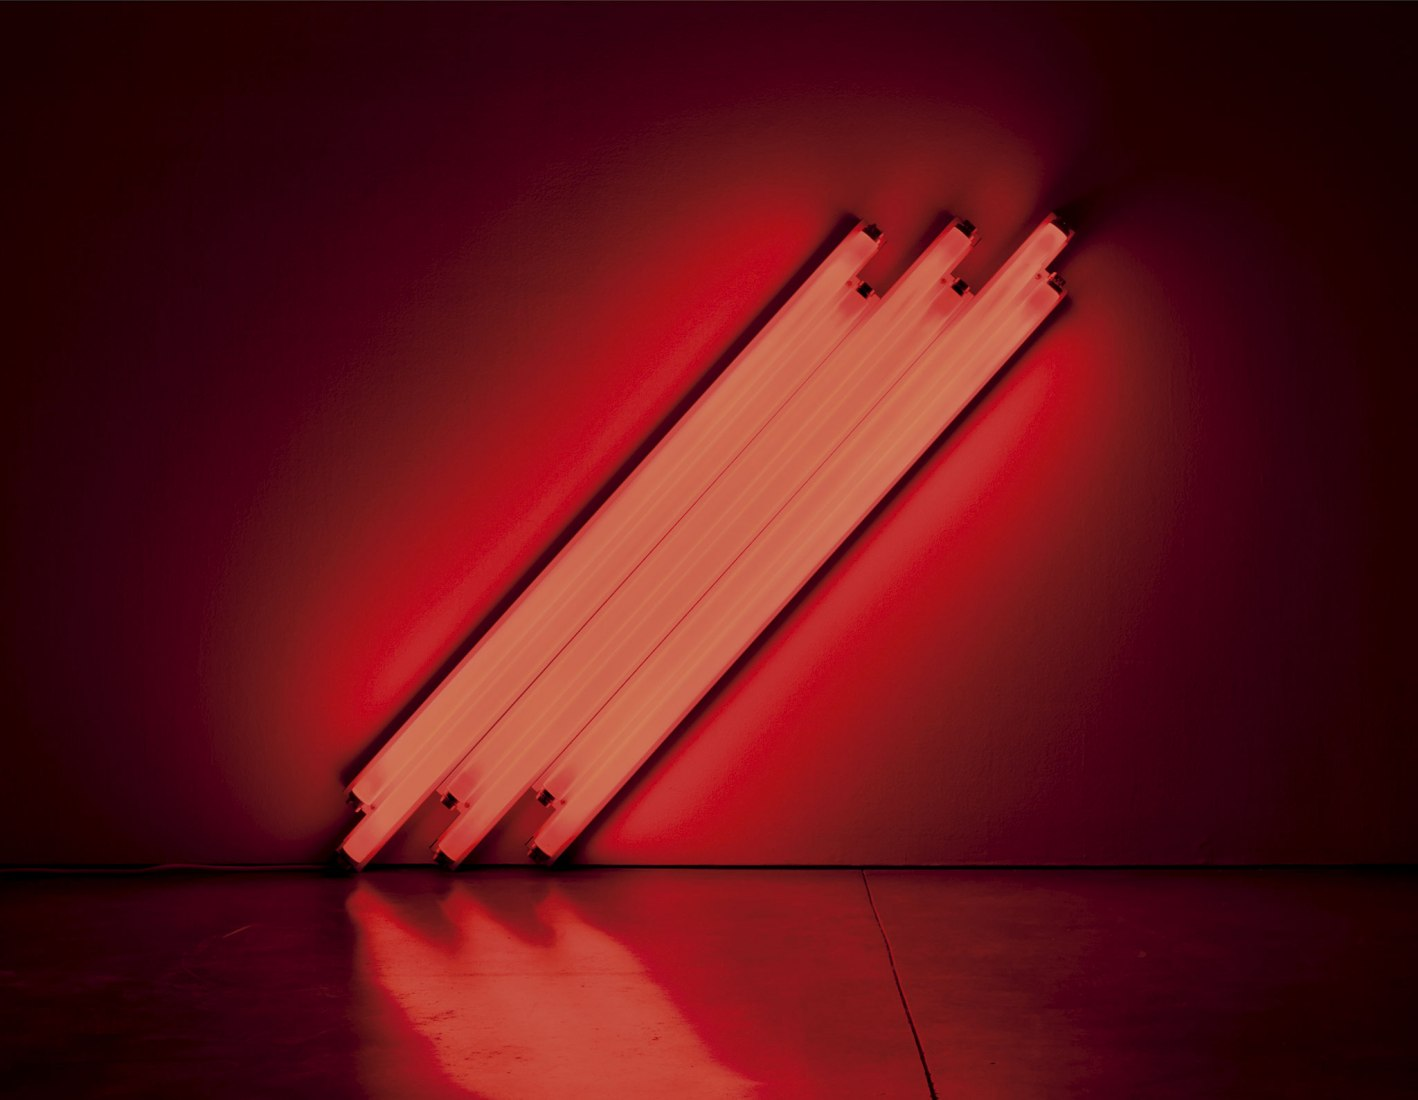 Dan Flavin  untitled (to V. Mayakovsky) 1, 1987. Zeit Contemporary Art. Minimal Means: Concrete Inventions in the US, Brazil and Spain